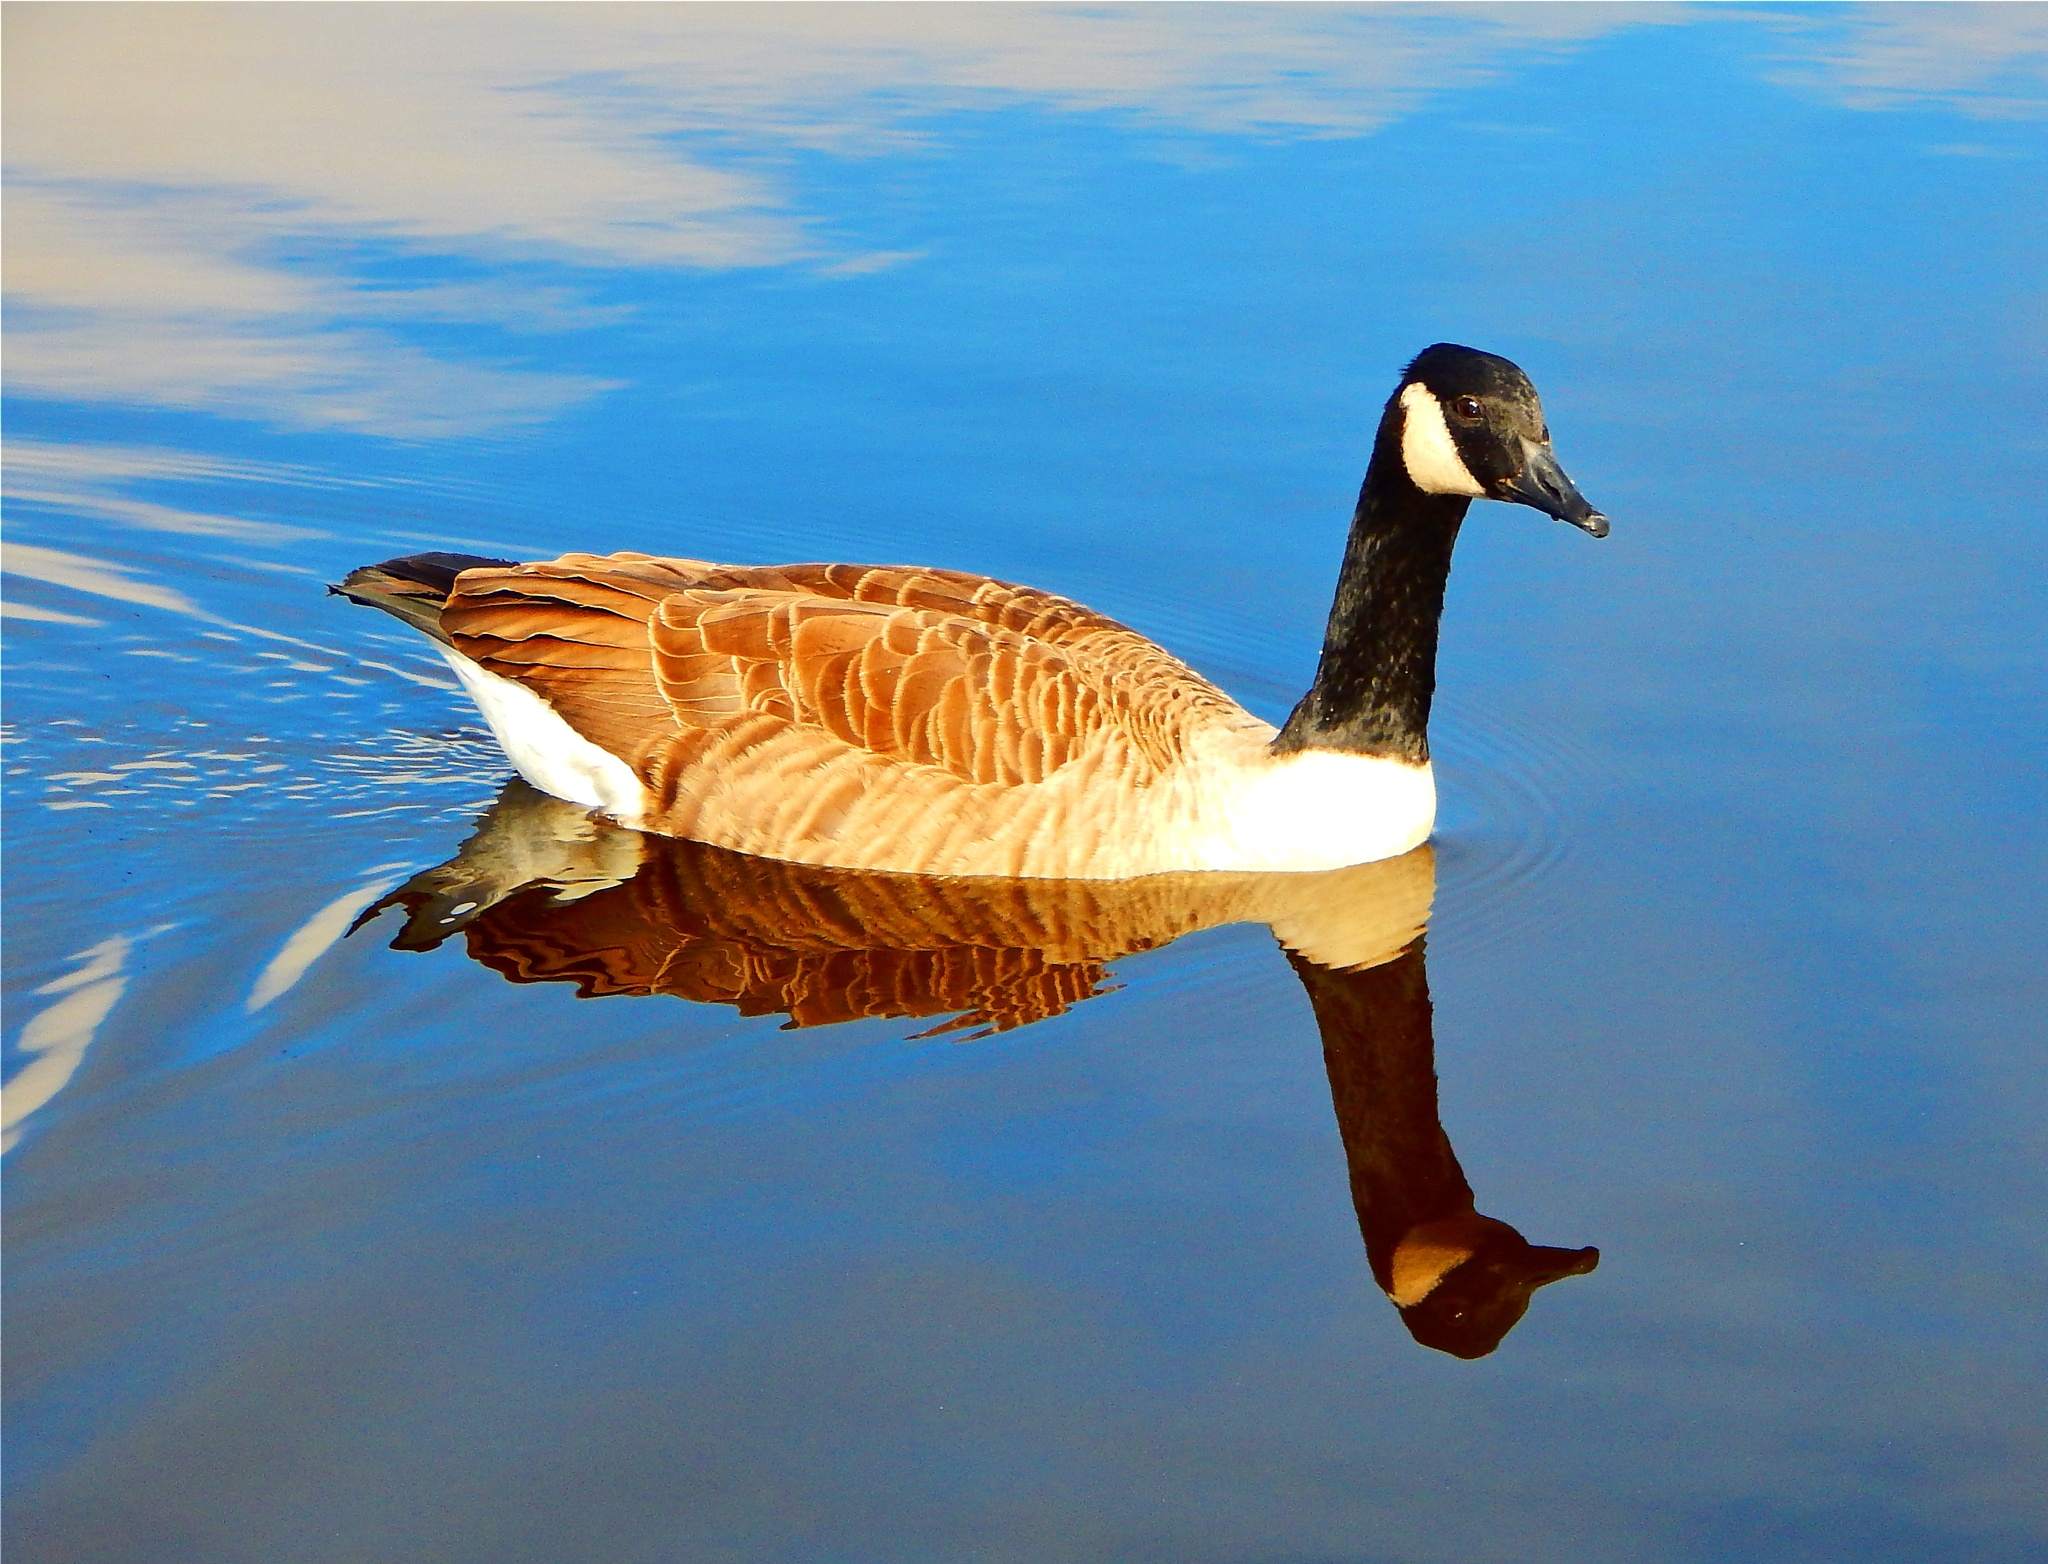 canadian goose by nikita.buckley.9